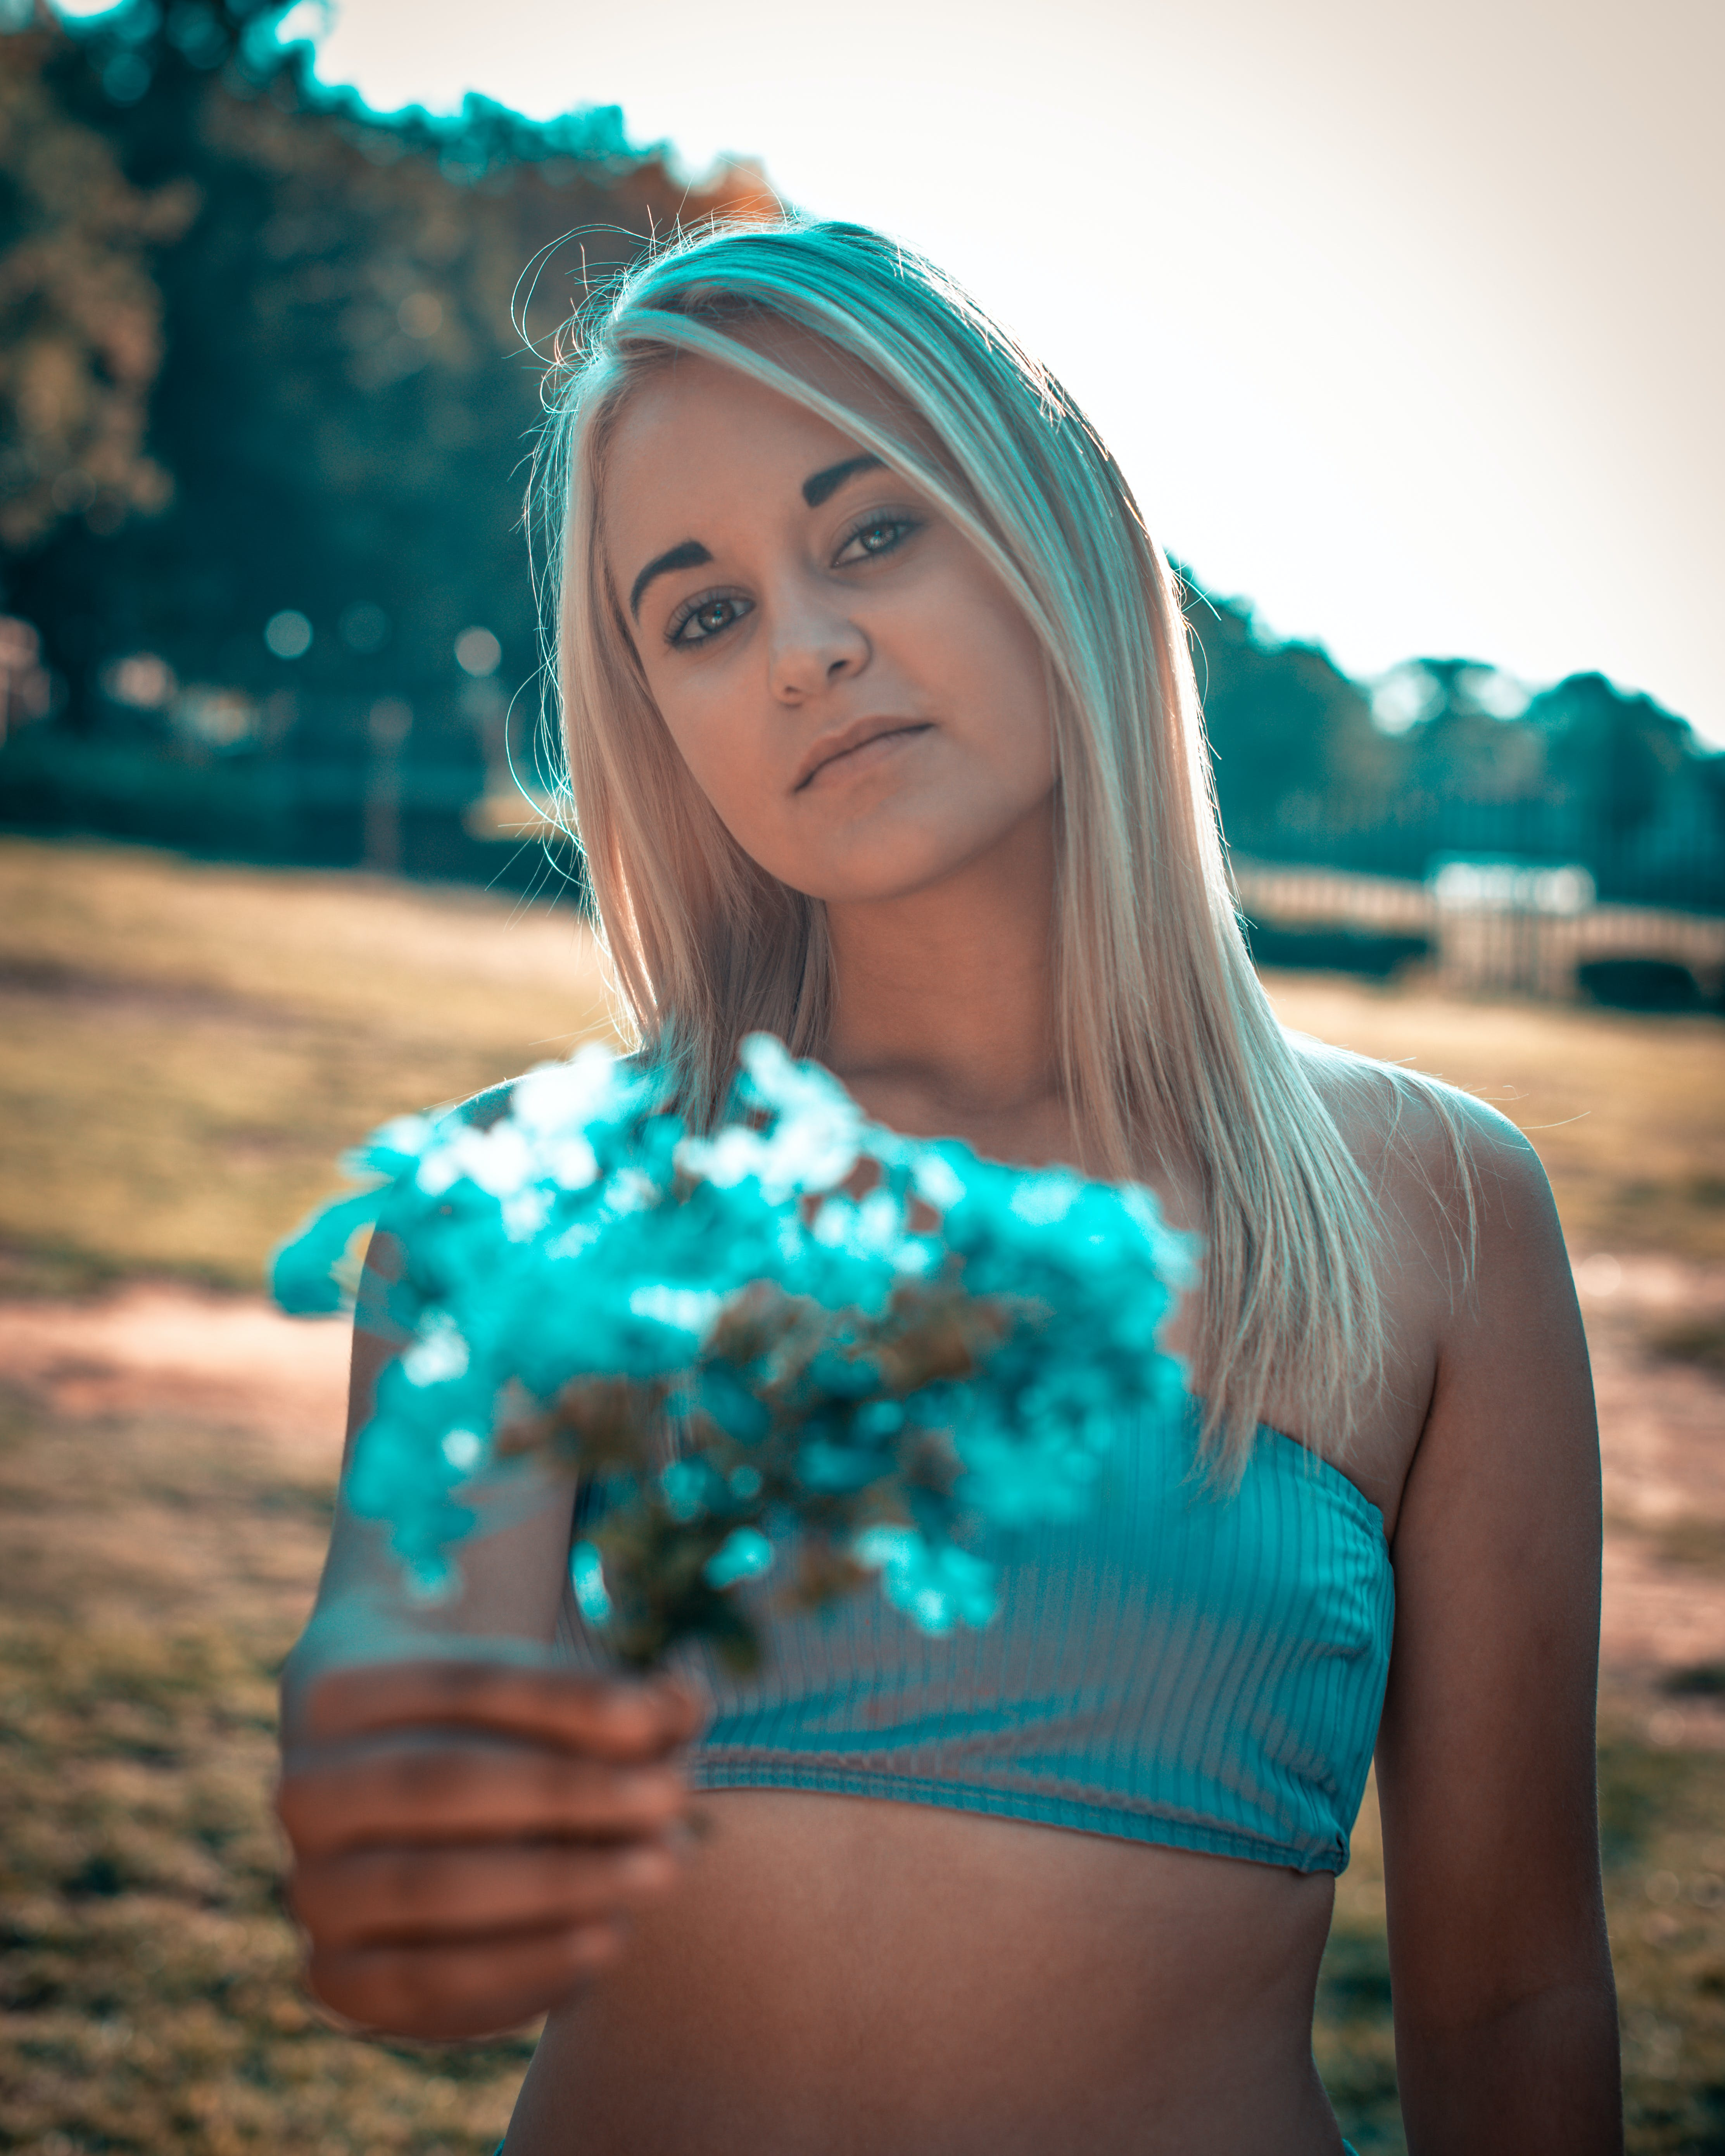 Photo of Woman in Tube Top Holding Out Blue Flowers